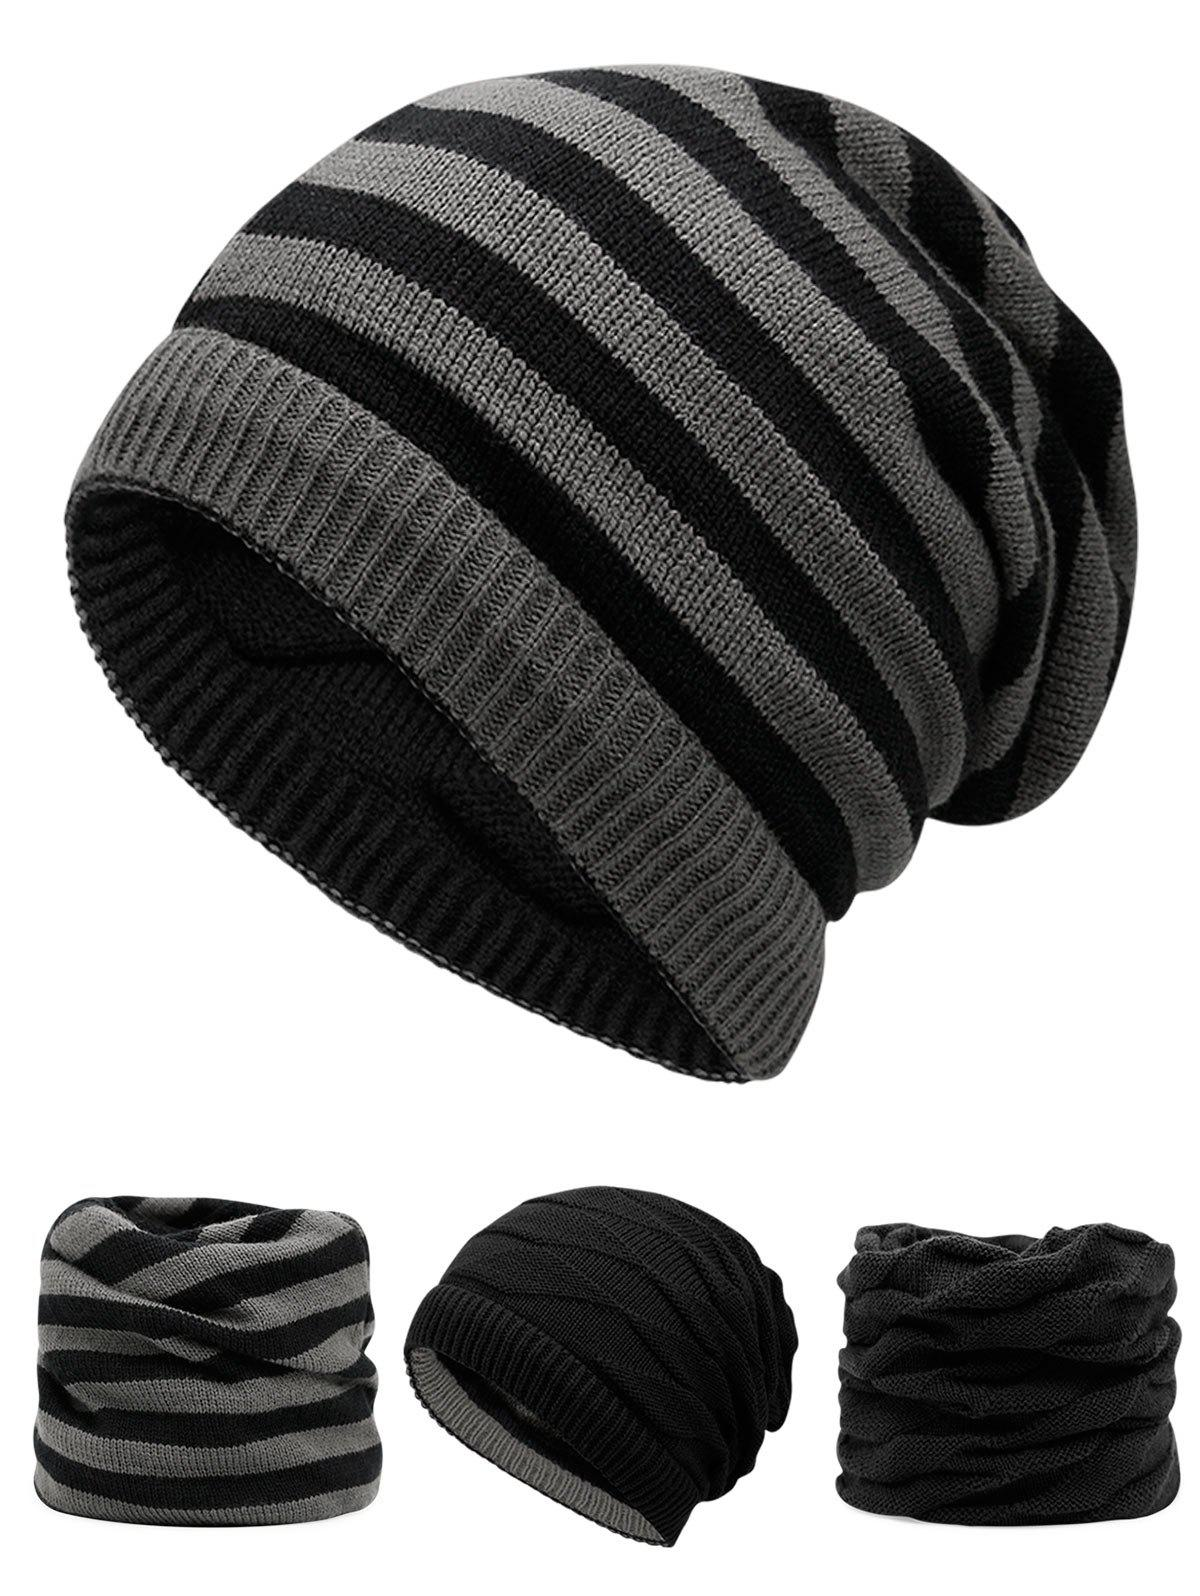 Outdoor Ponytail Hole Embellished Reversible Knit Beanie HatACCESSORIES<br><br>Color: BLACK; Hat Type: Skullies Beanie; Group: Adult; Gender: For Men; Style: Fashion; Pattern Type: Others; Material: Acrylic; Weight: 0.1200kg; Package Contents: 1 x Hat;